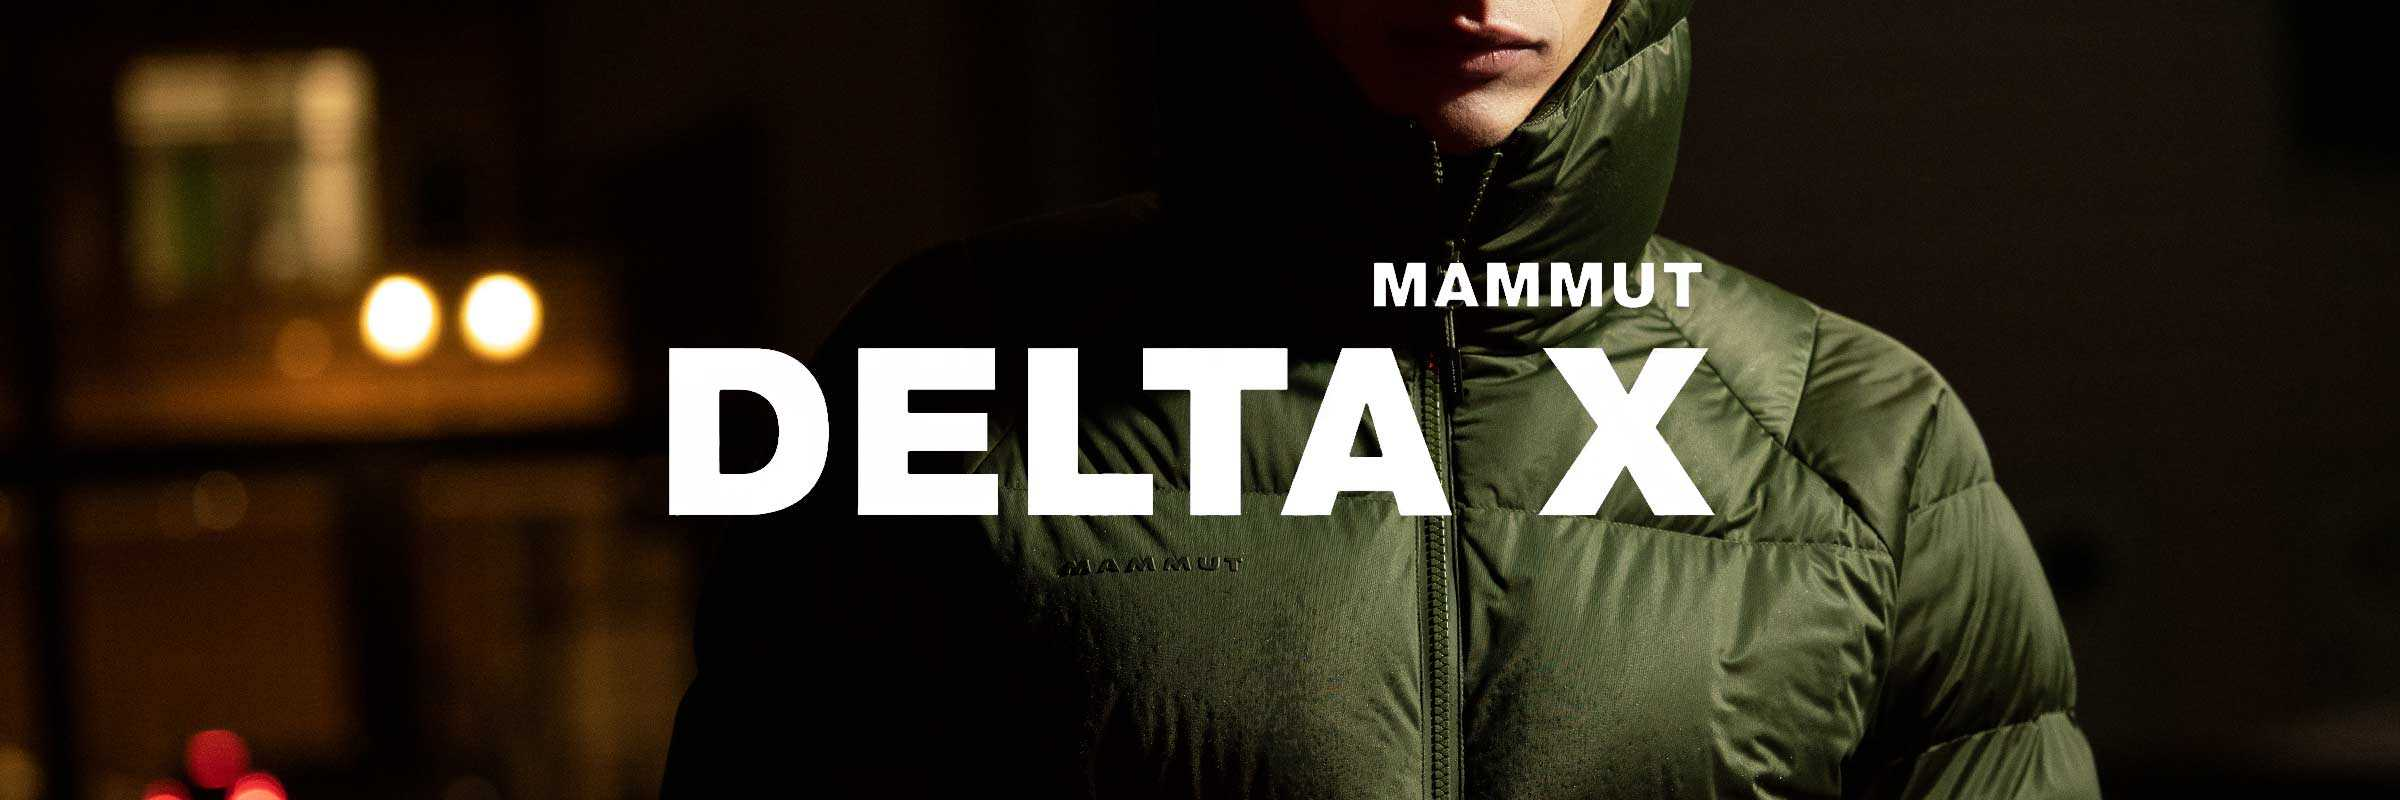 Mammut Delta X: Performance Apparel for the Urban Environment